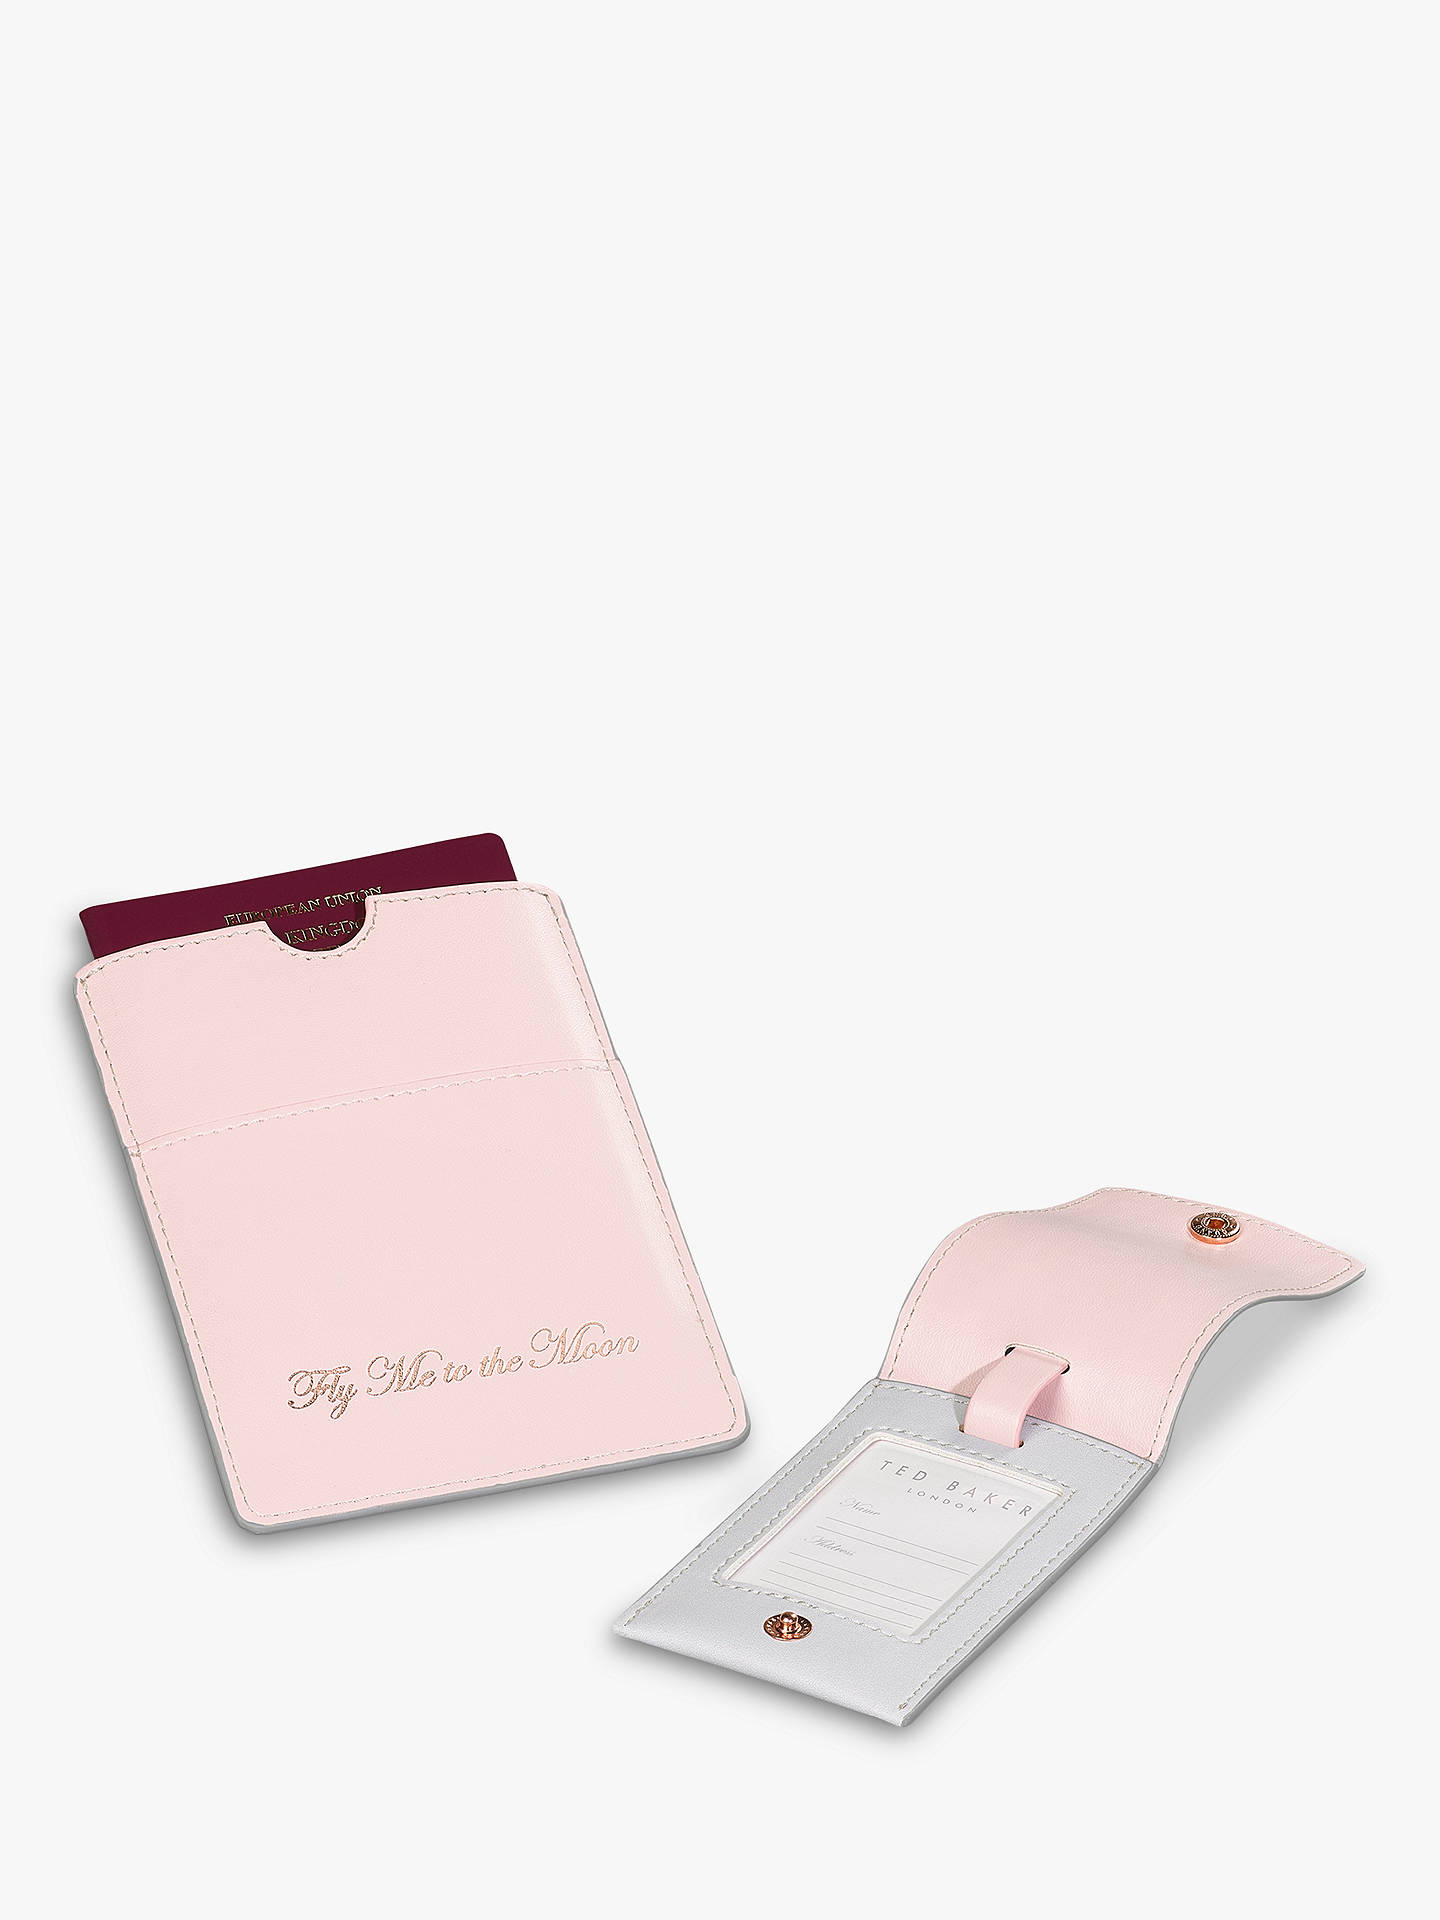 BuyTed Baker Chelsea Luggage Tag & Passport Set Online at johnlewis.com